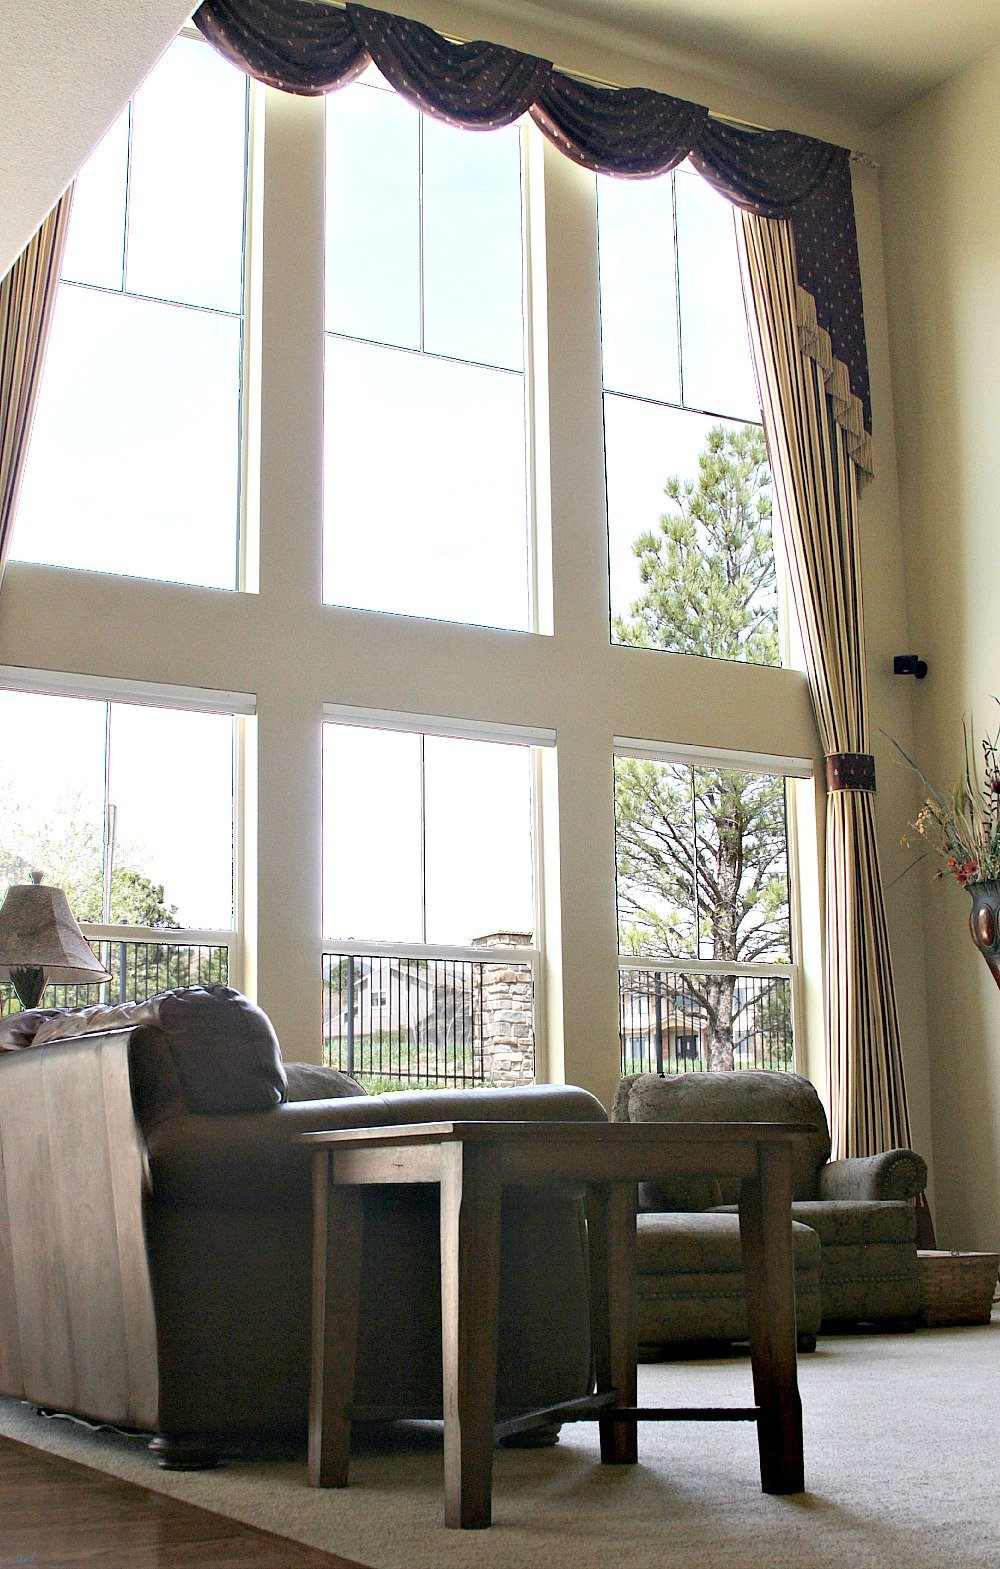 Wall of windows in a home for sale in Cheyenne Mountain in Colorado Springs